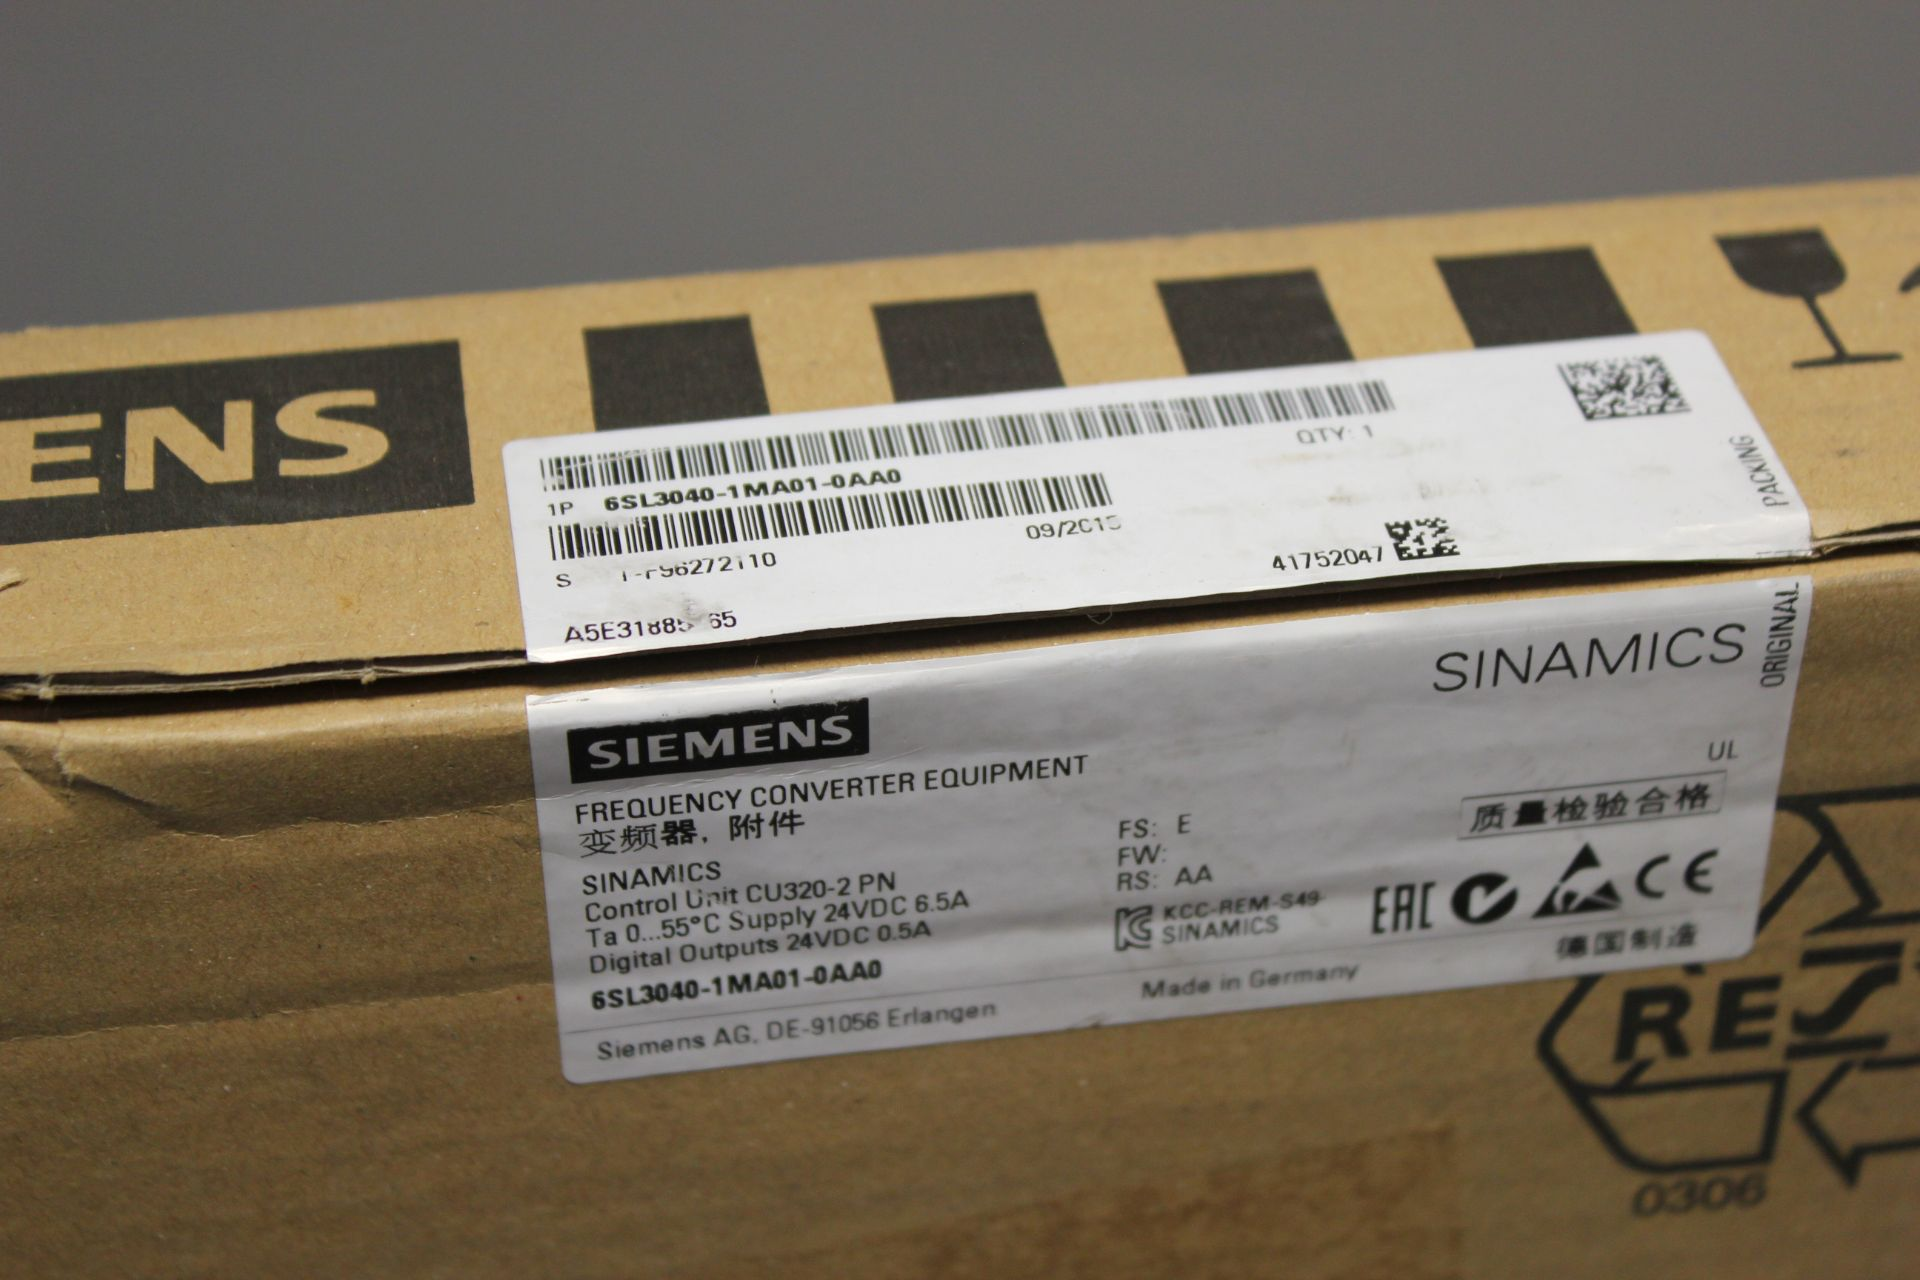 NEW SIEMENS SINAMICS FREQUENCY CONVERTER CONTROL UNIT - Image 3 of 6